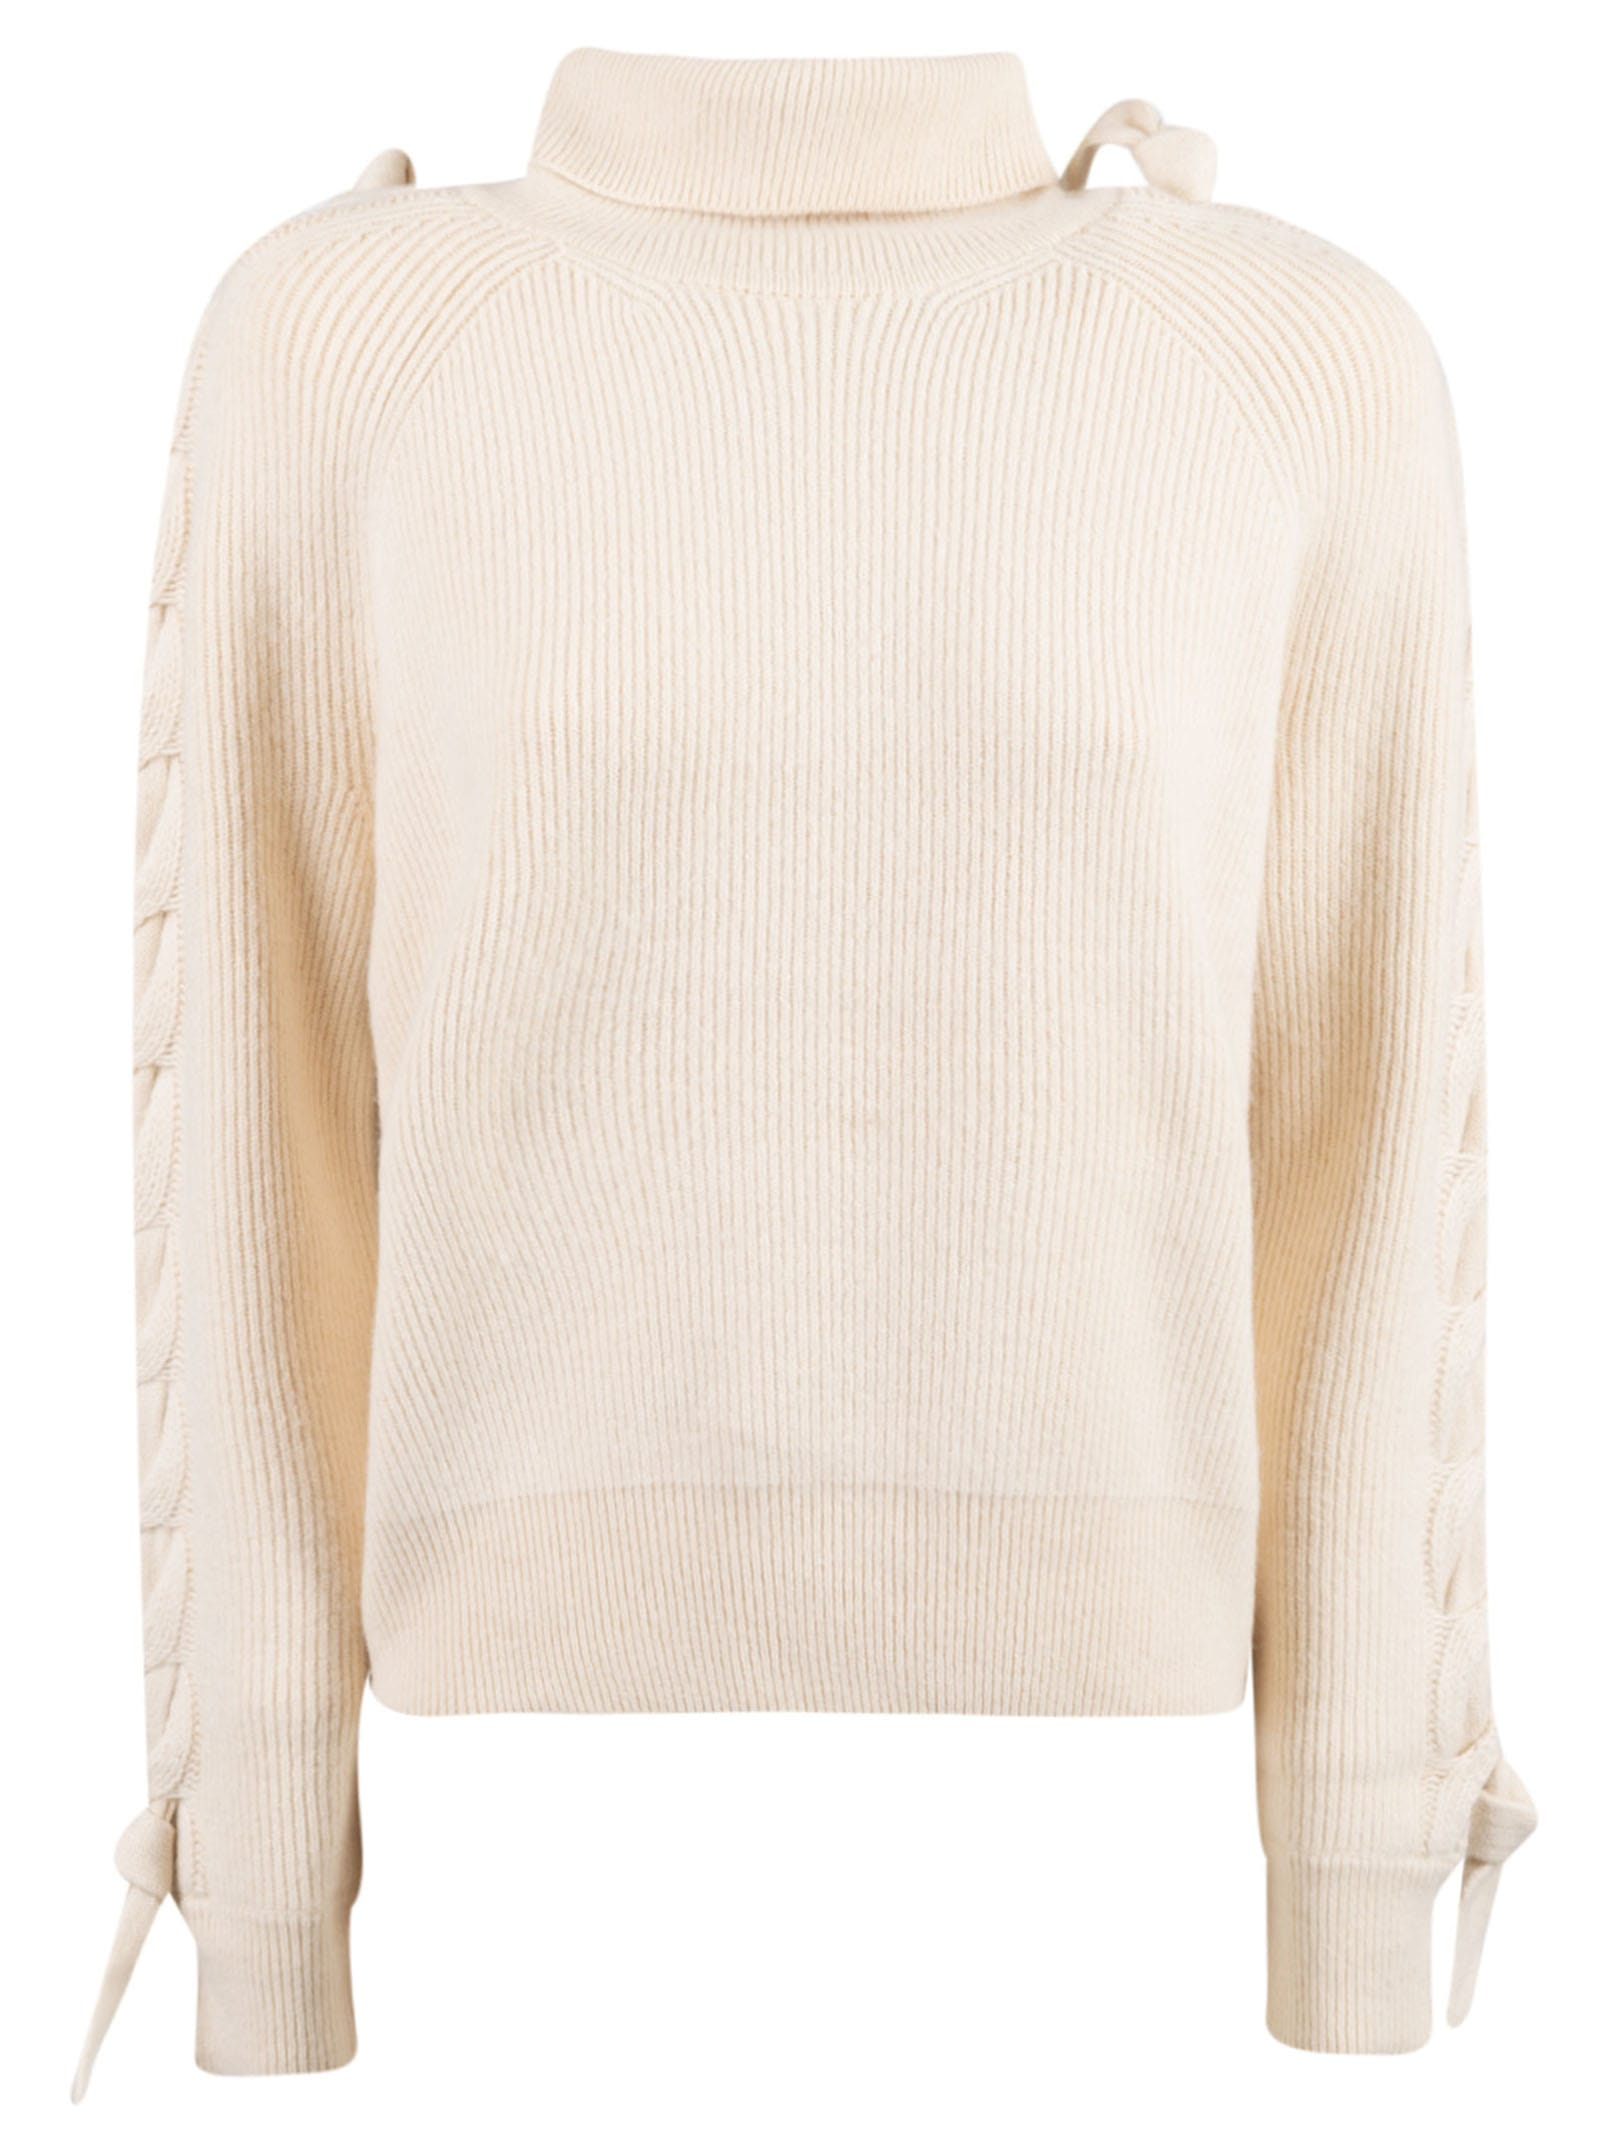 JW ANDERSON CABLE INSERT TURTLENECK SWEATER